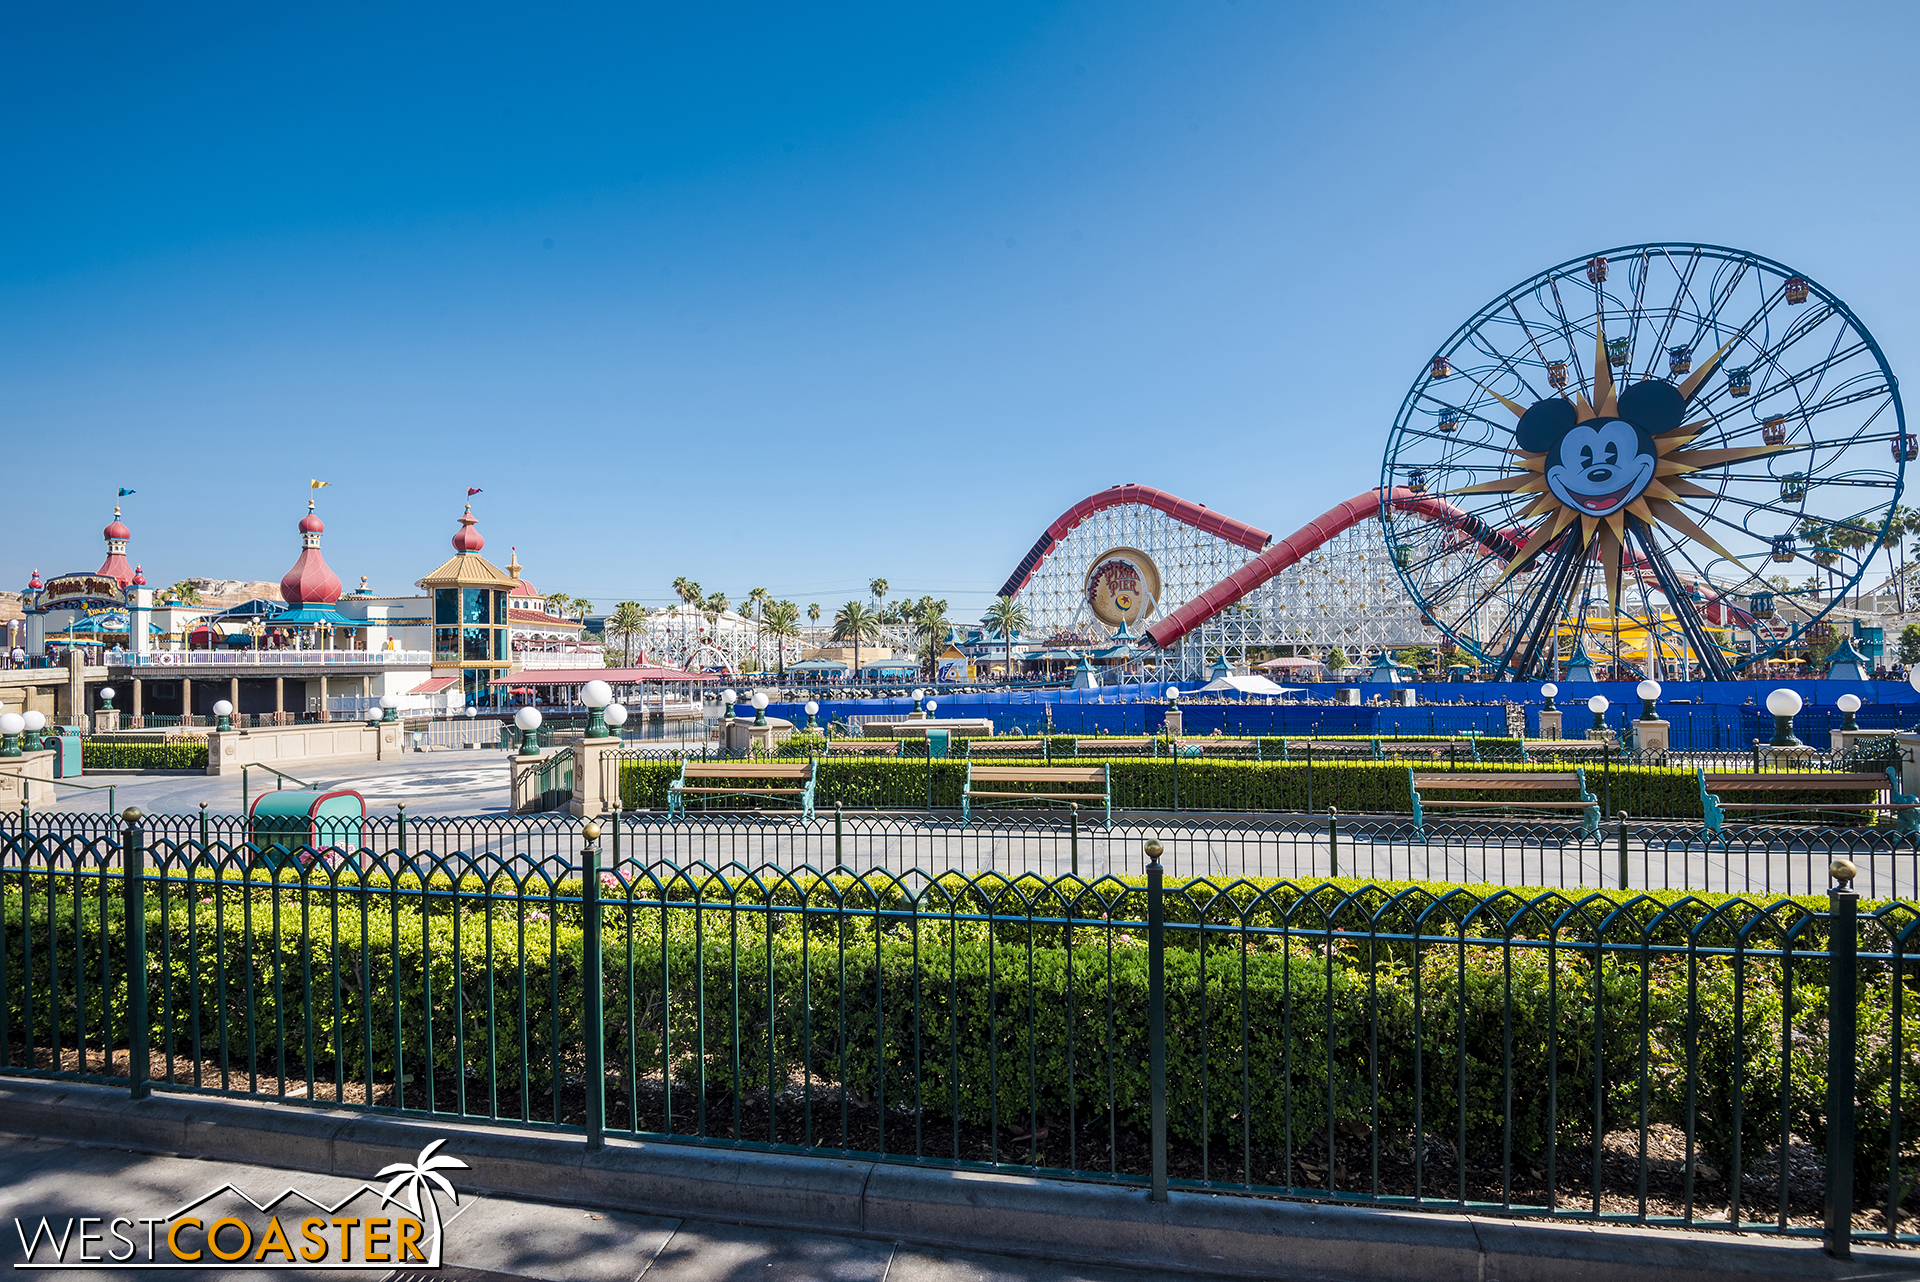 In World of Color news, the platforms are back up for repairs.